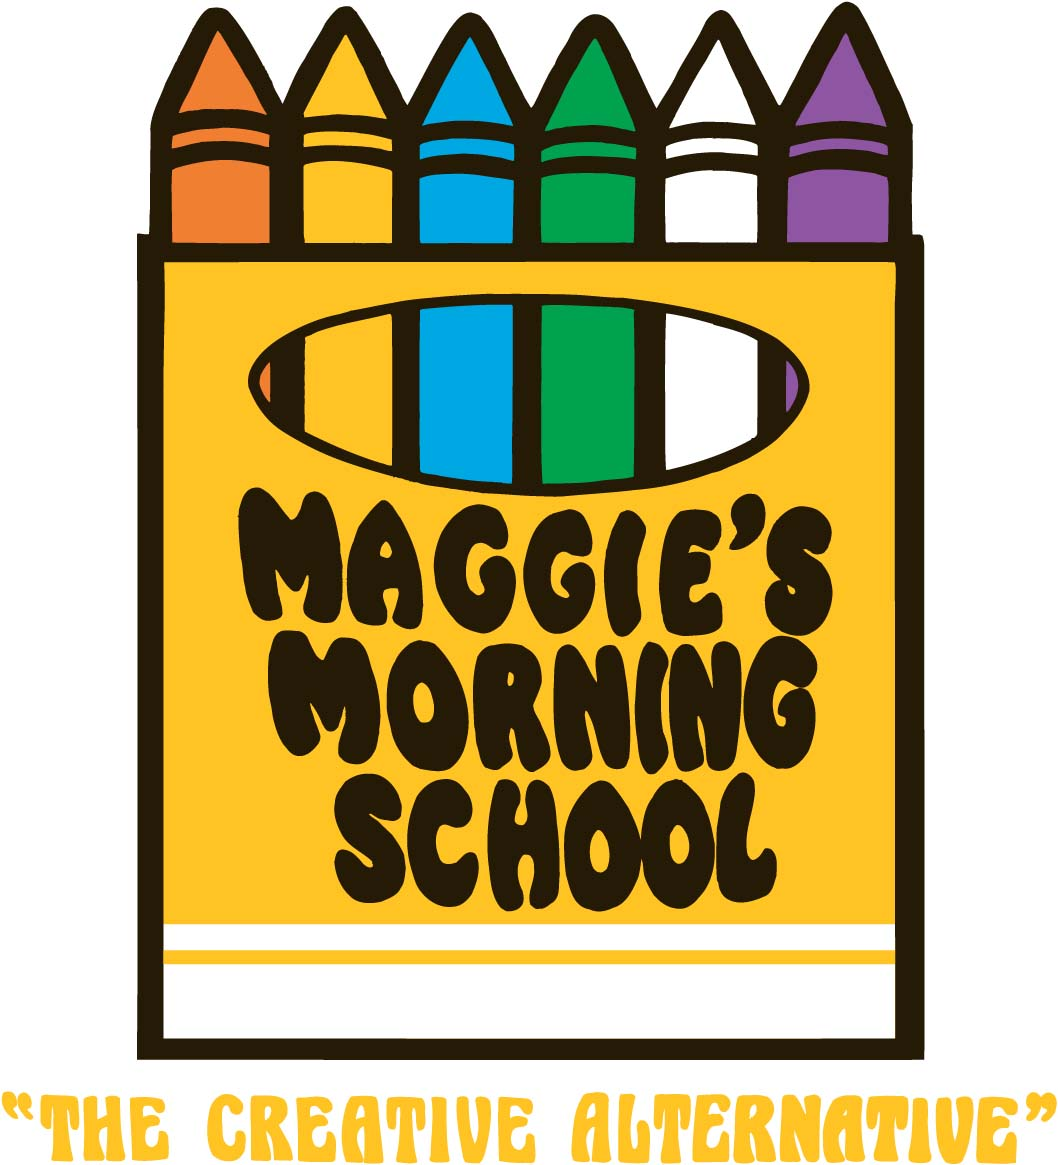 Maggie's Morning School